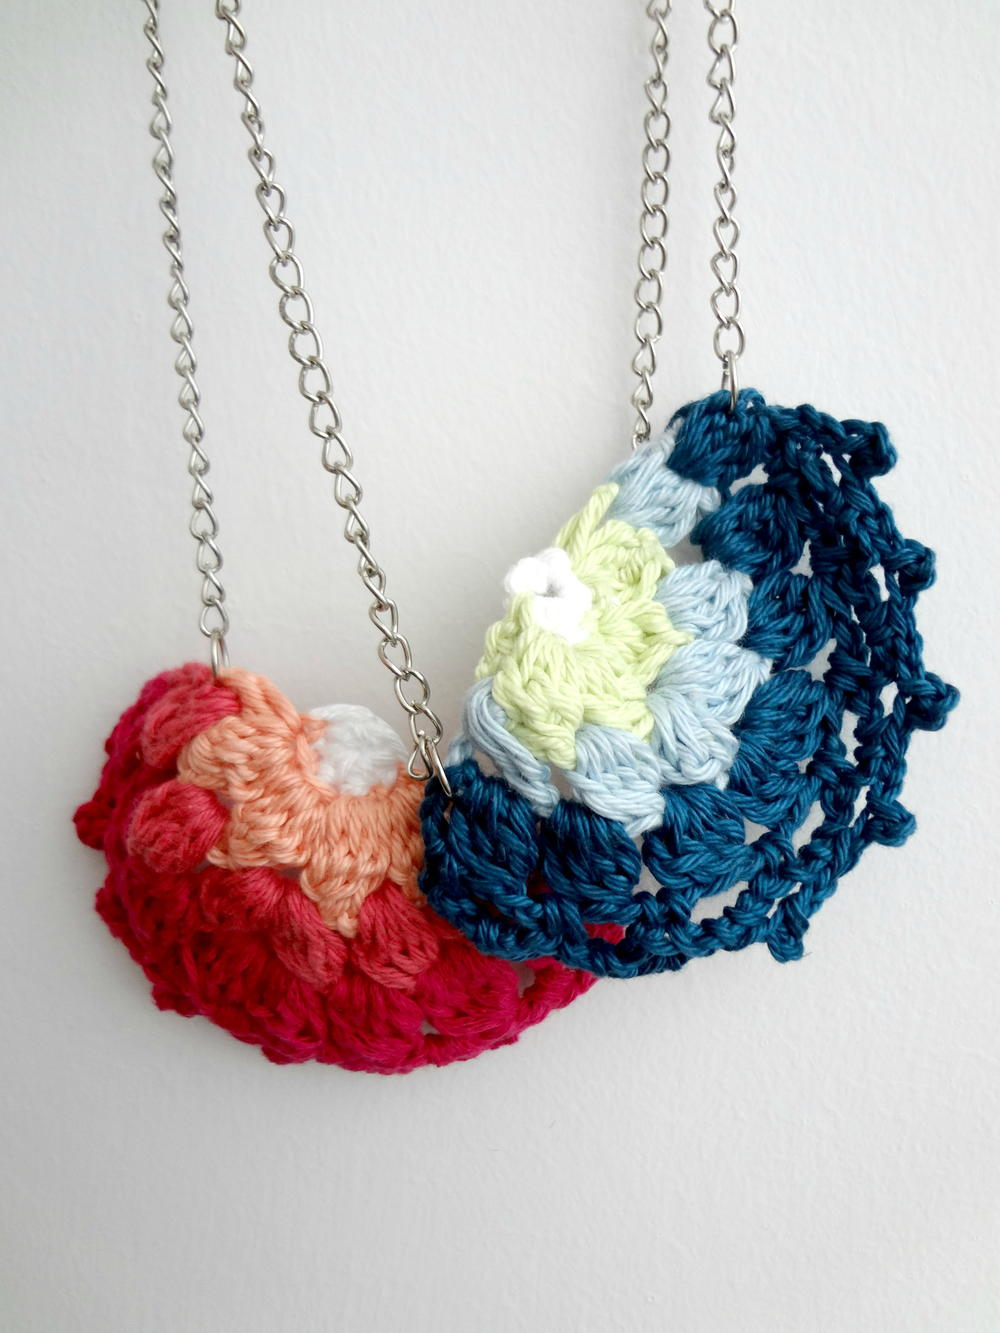 Free Crochet Wedding Jewelry Patterns : Crocheted Doily DIY Necklace FaveCrafts.com